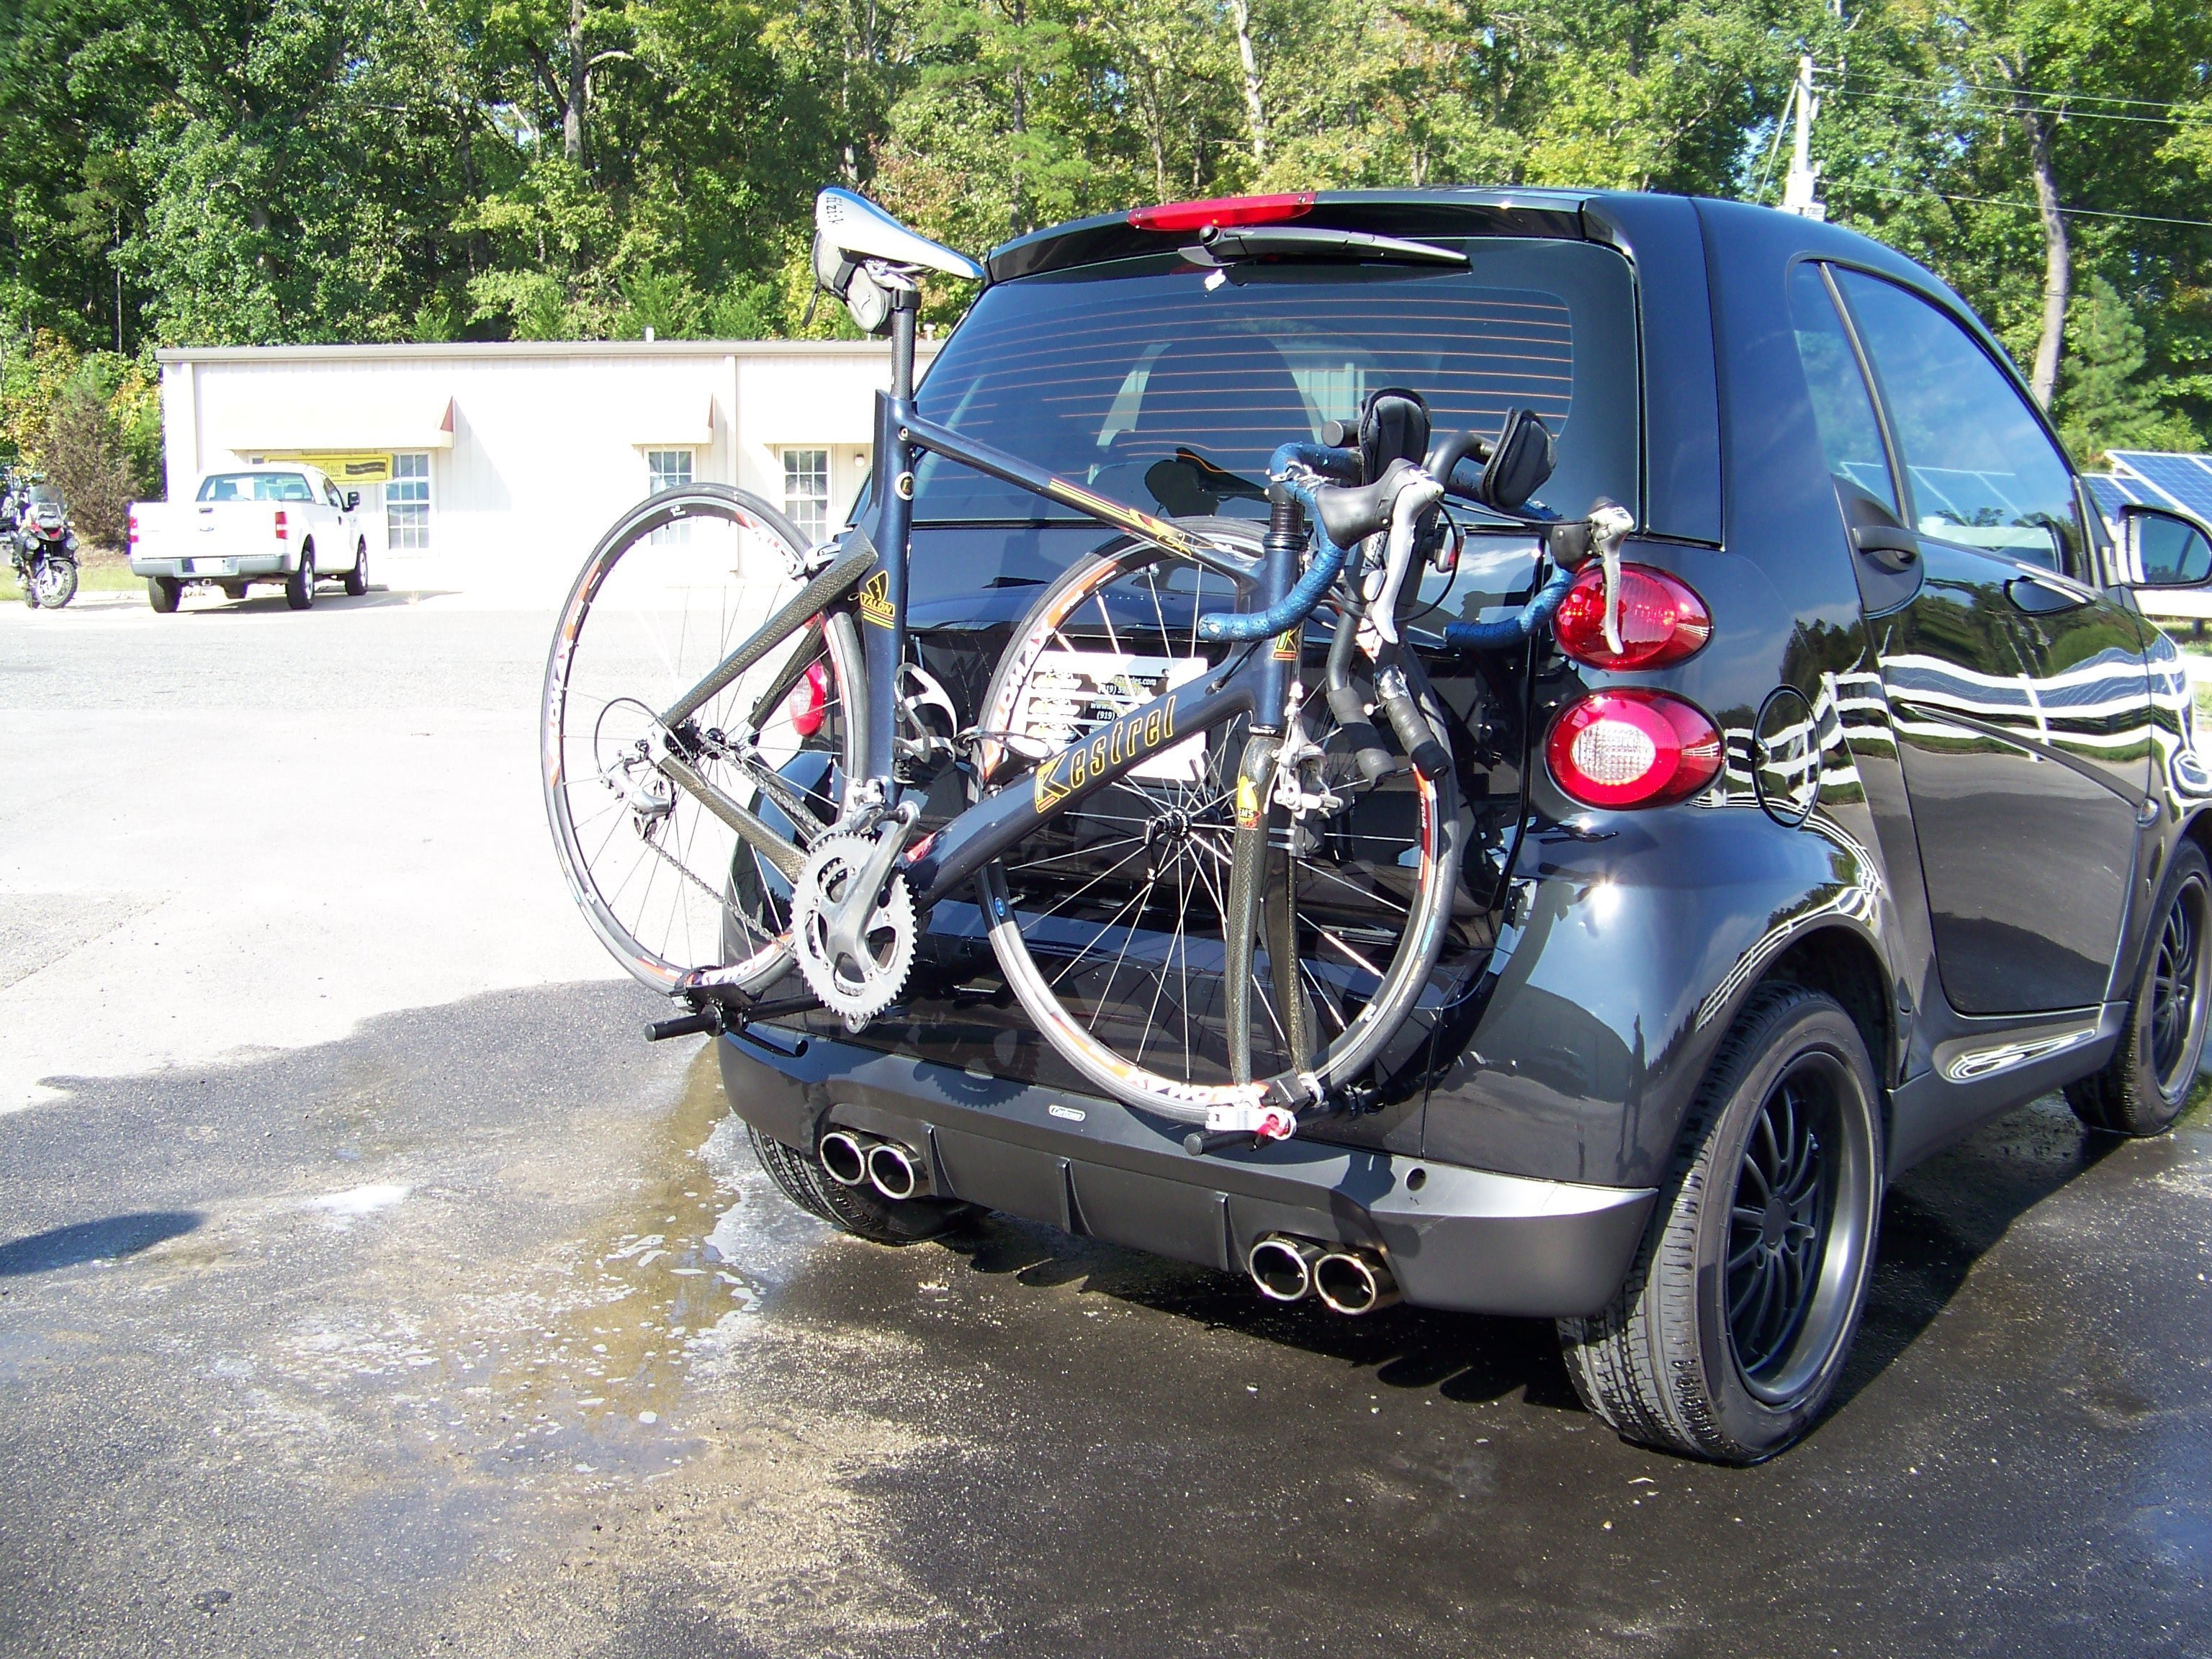 Bike Racks For Cars The Smart Car Bicycle Rack